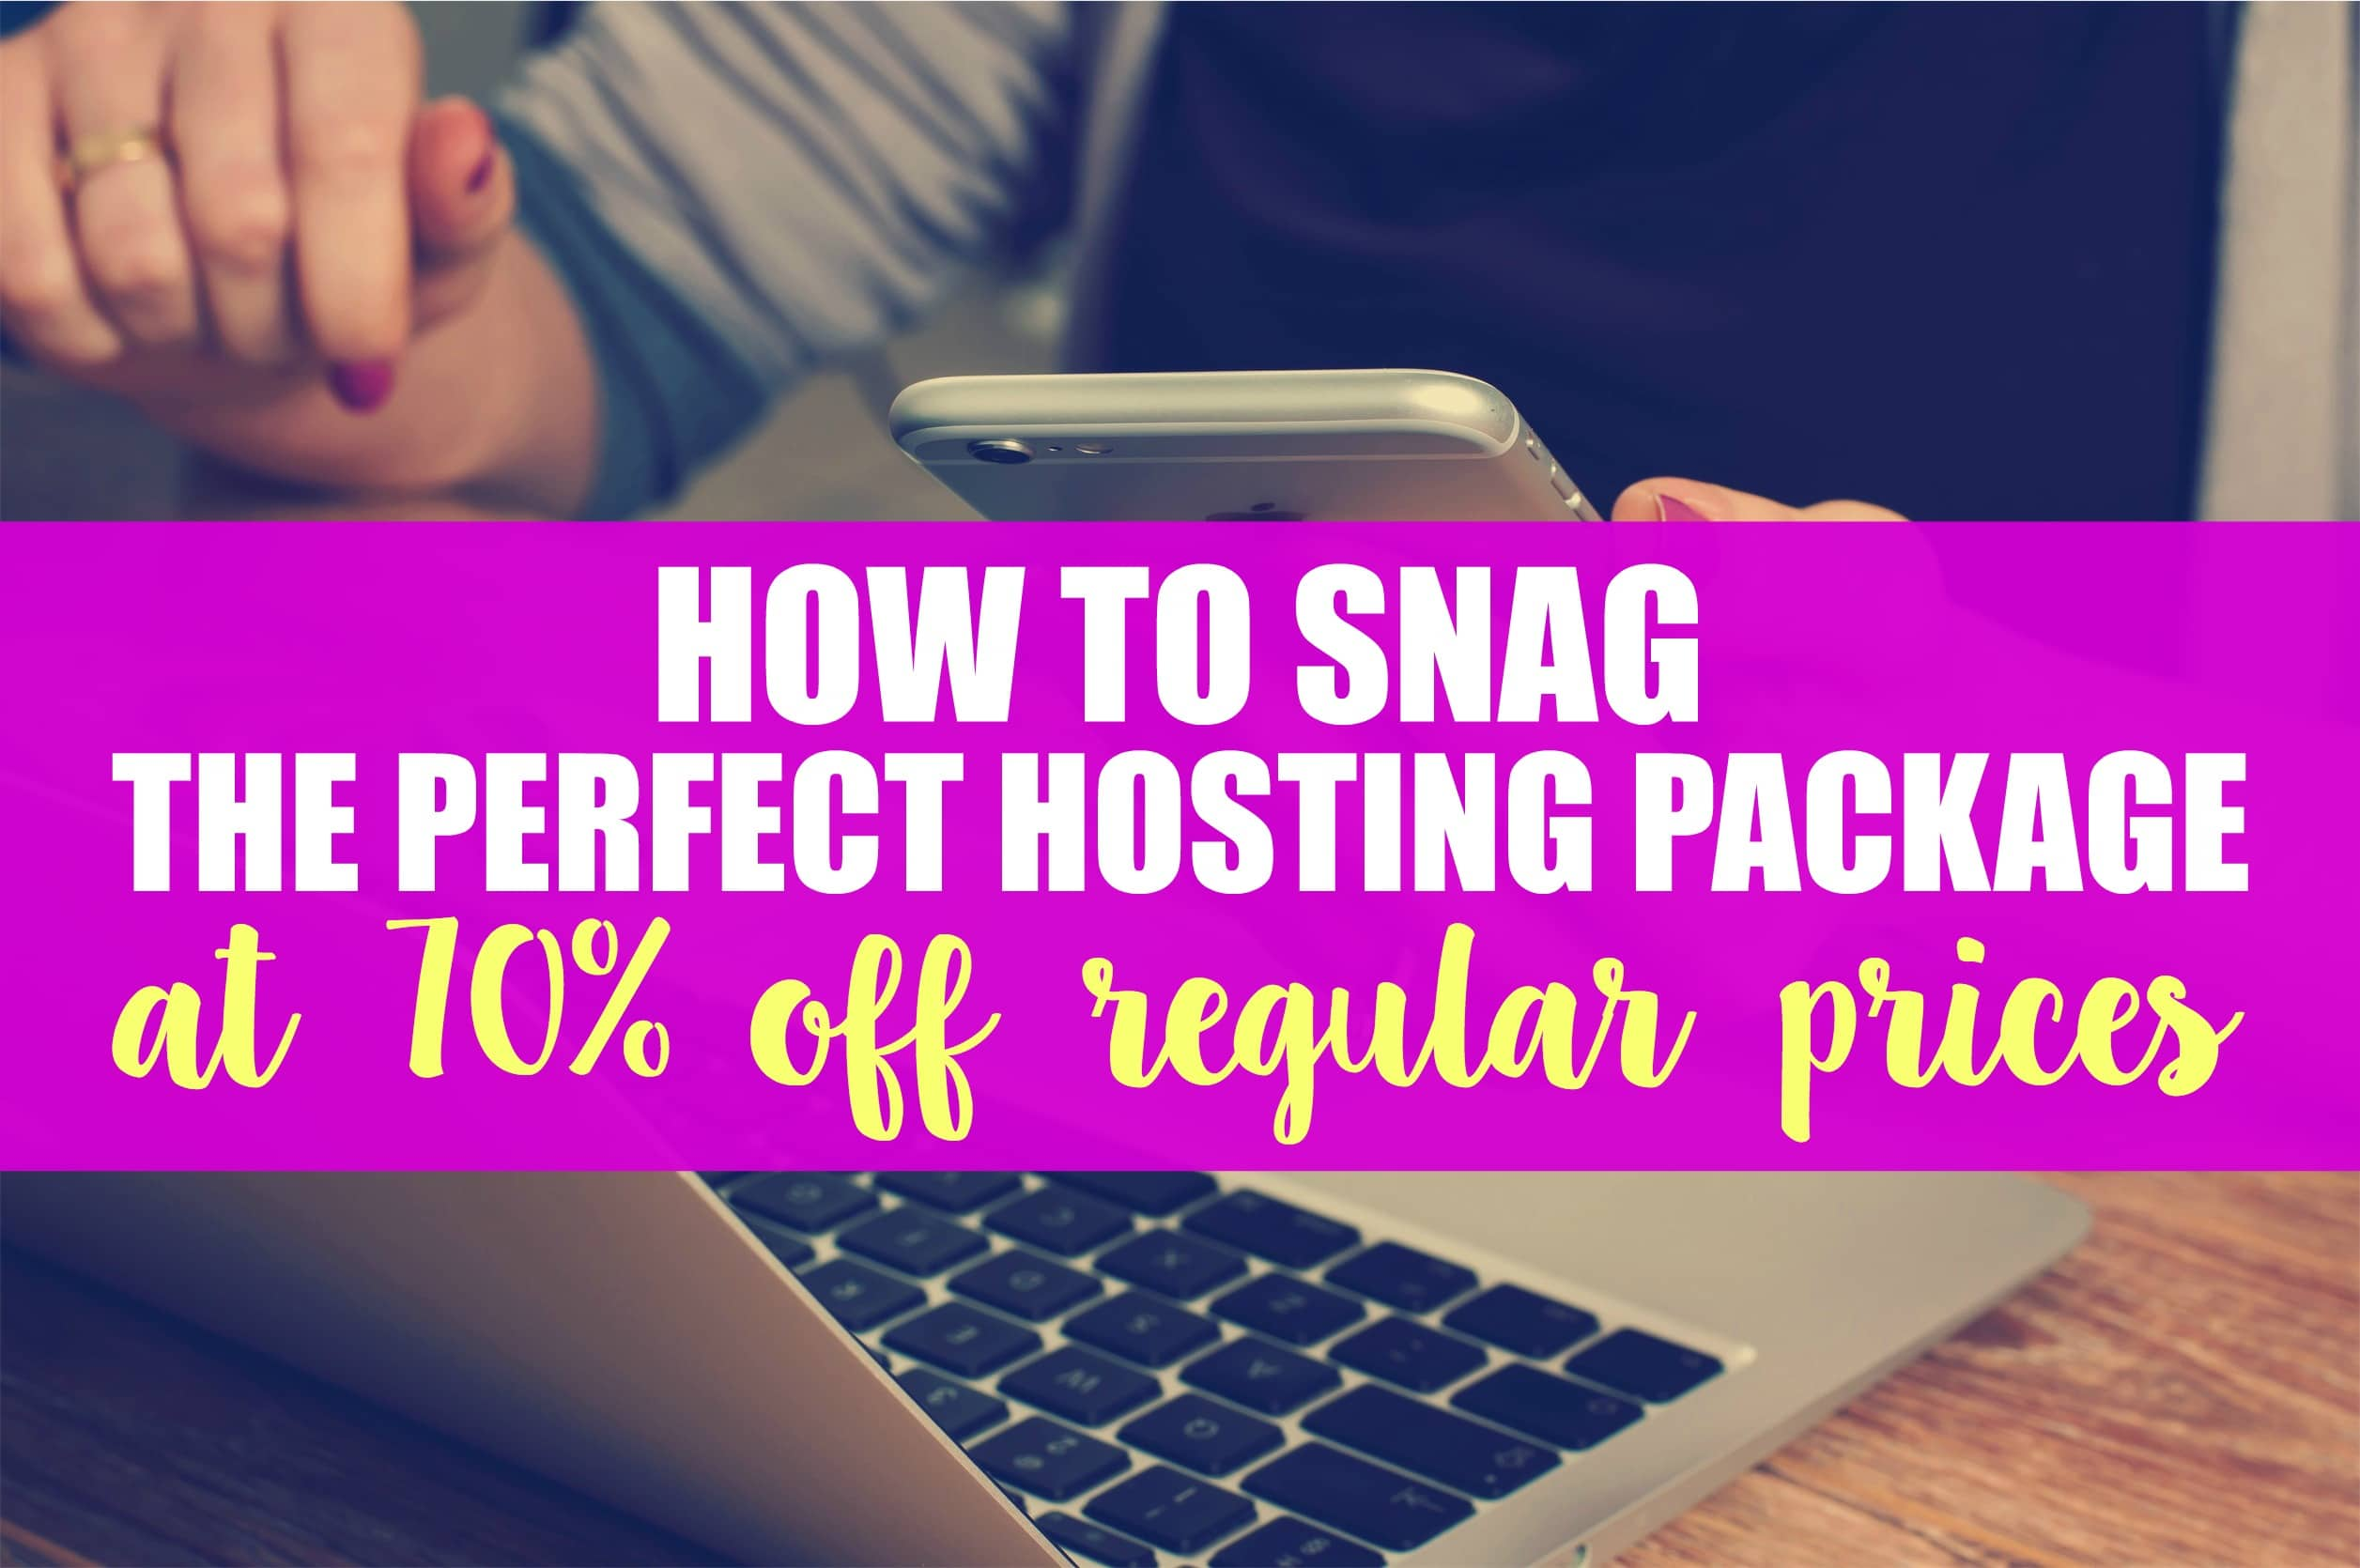 How to Snag the Perfect Hosting Package at 70% Off!